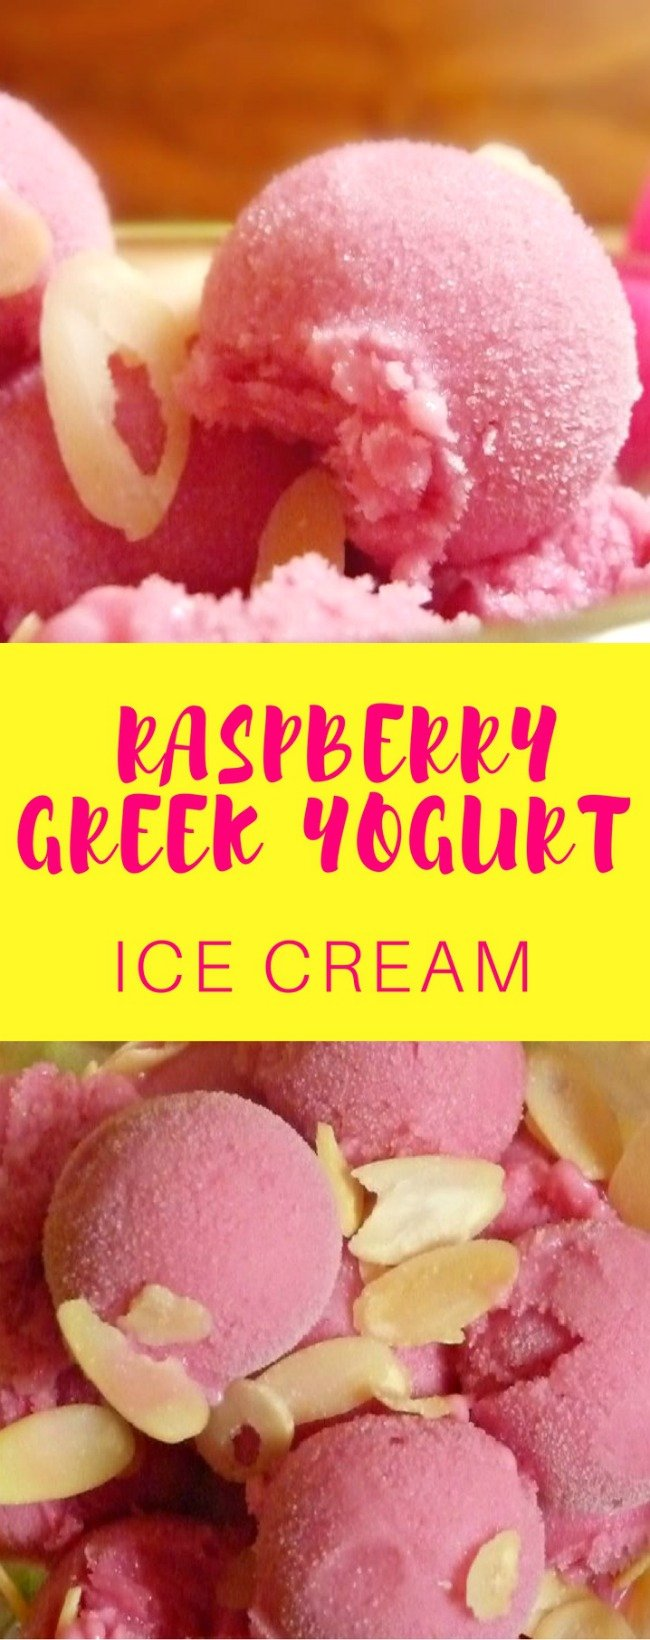 Raspberry Greek Yogurt Ice Cream Recipe